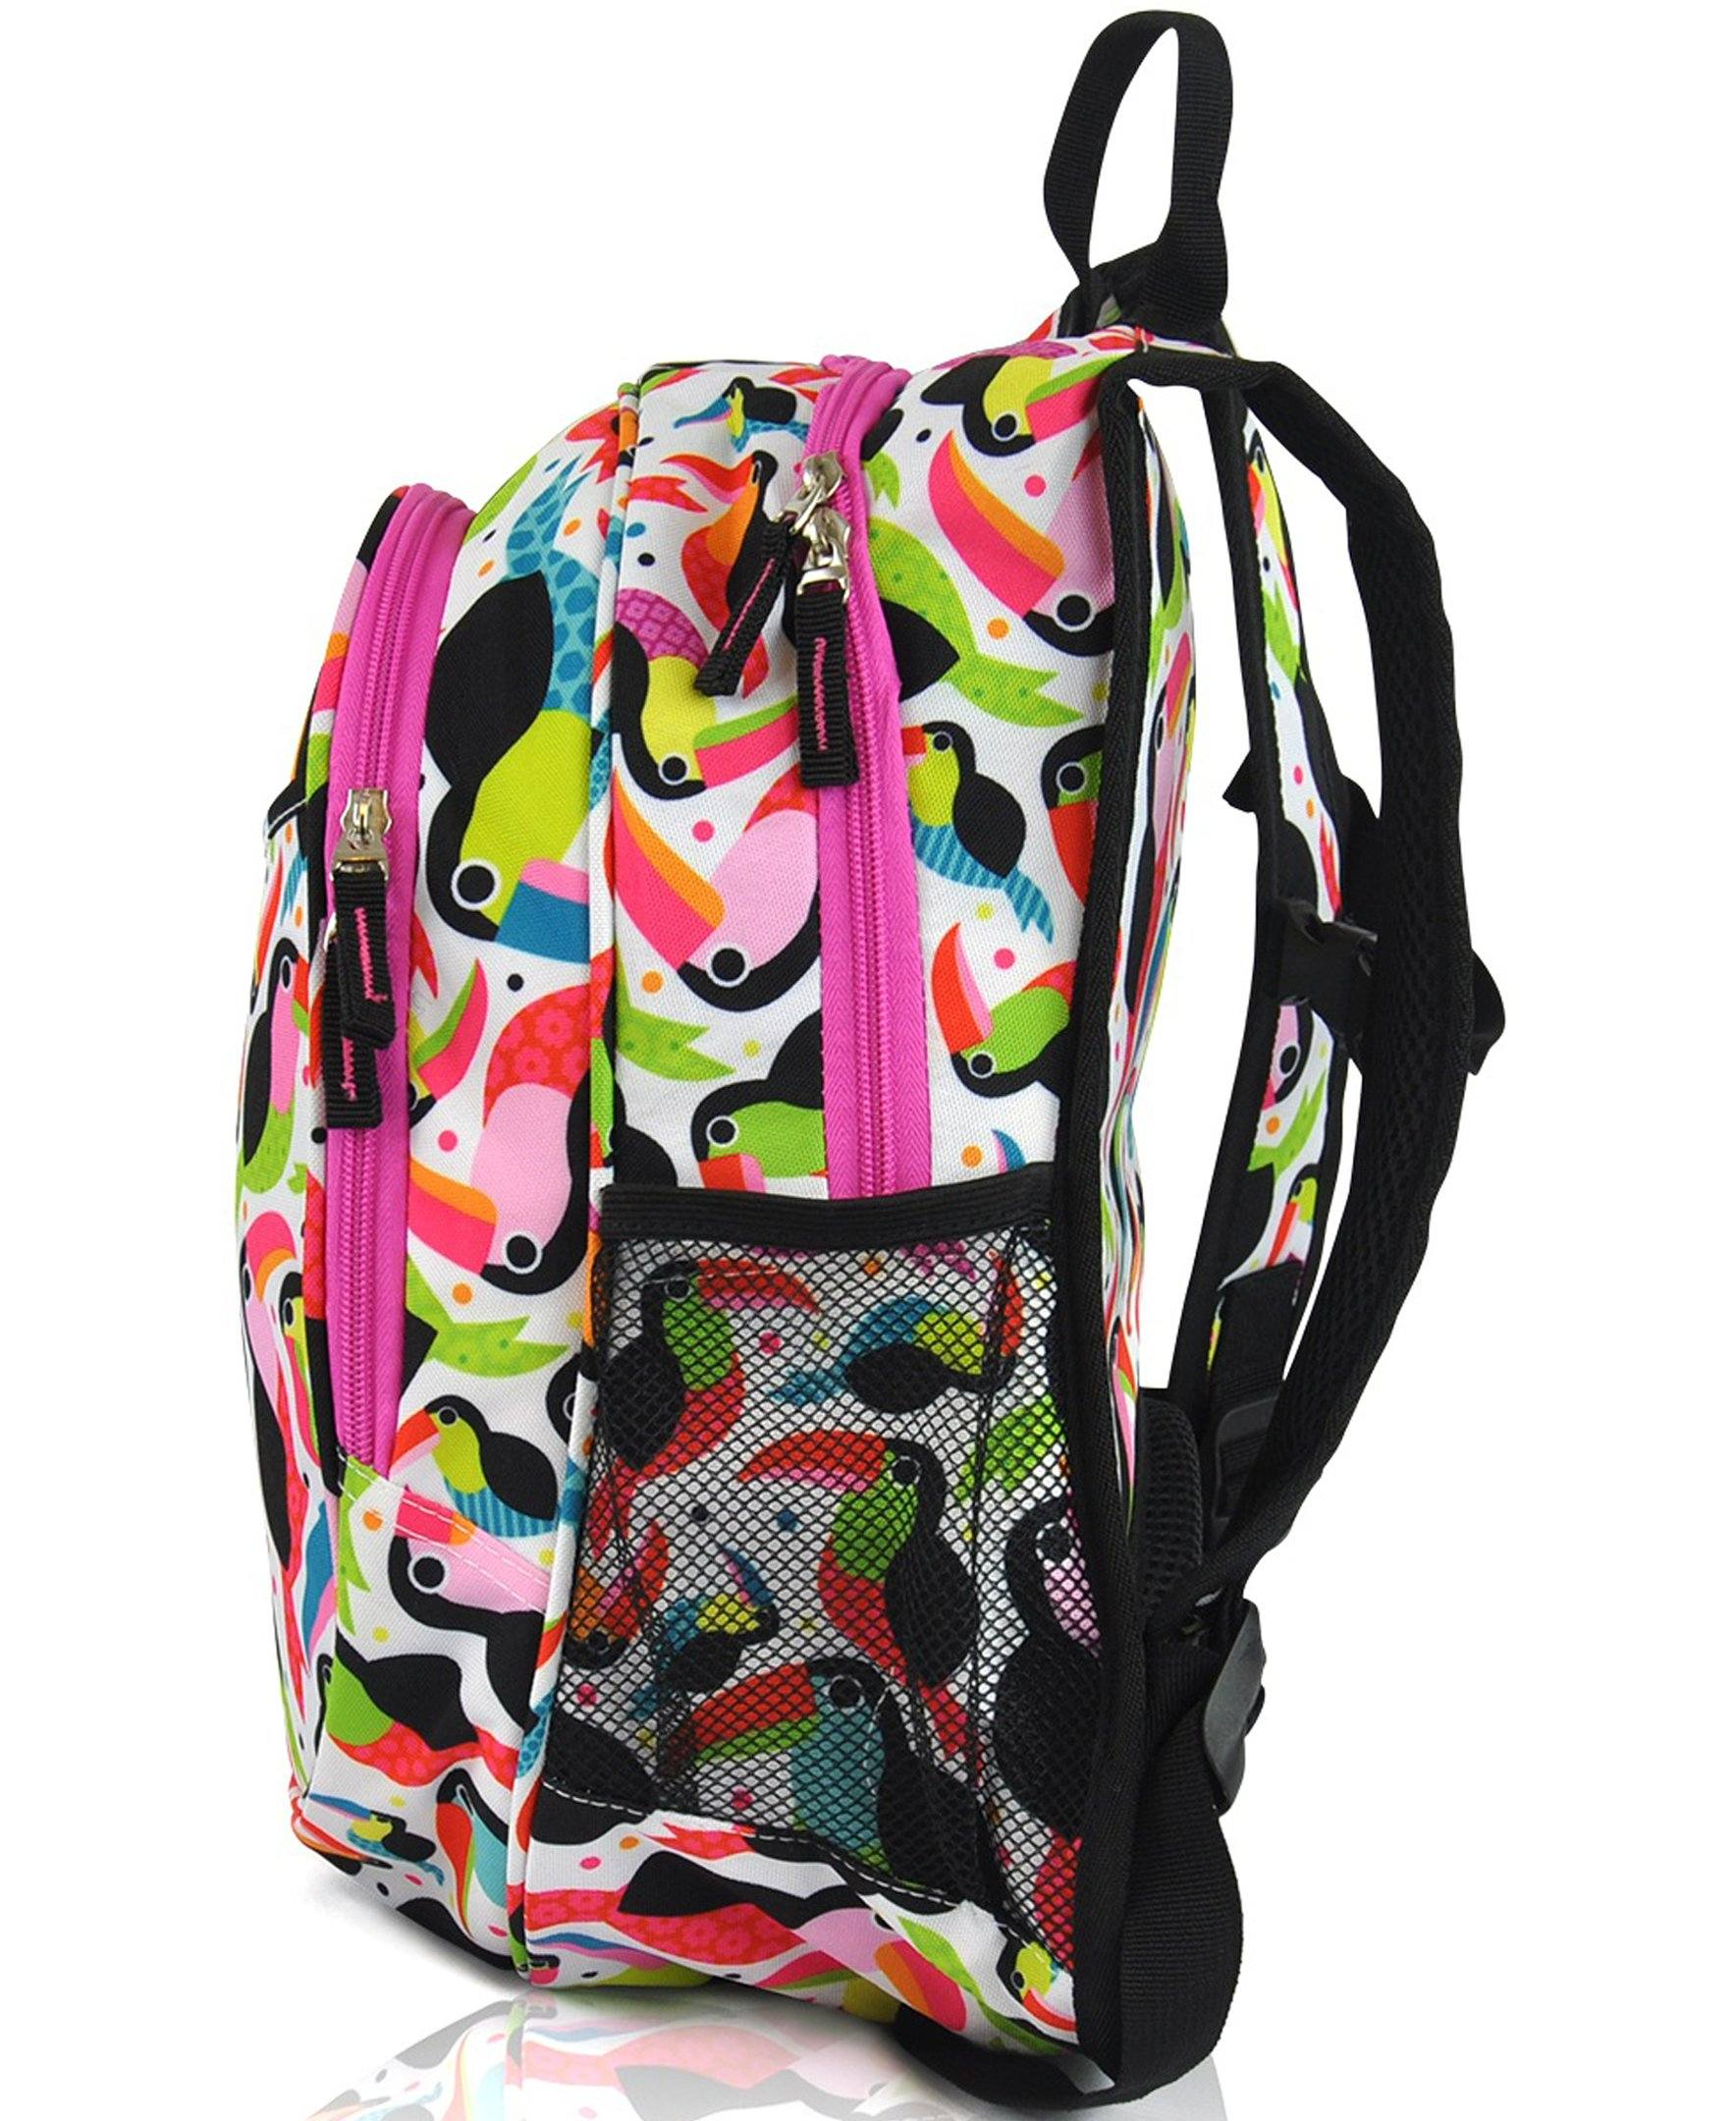 Obersee Kids Pre-School All-In-One Backpack With Cooler - Toucan